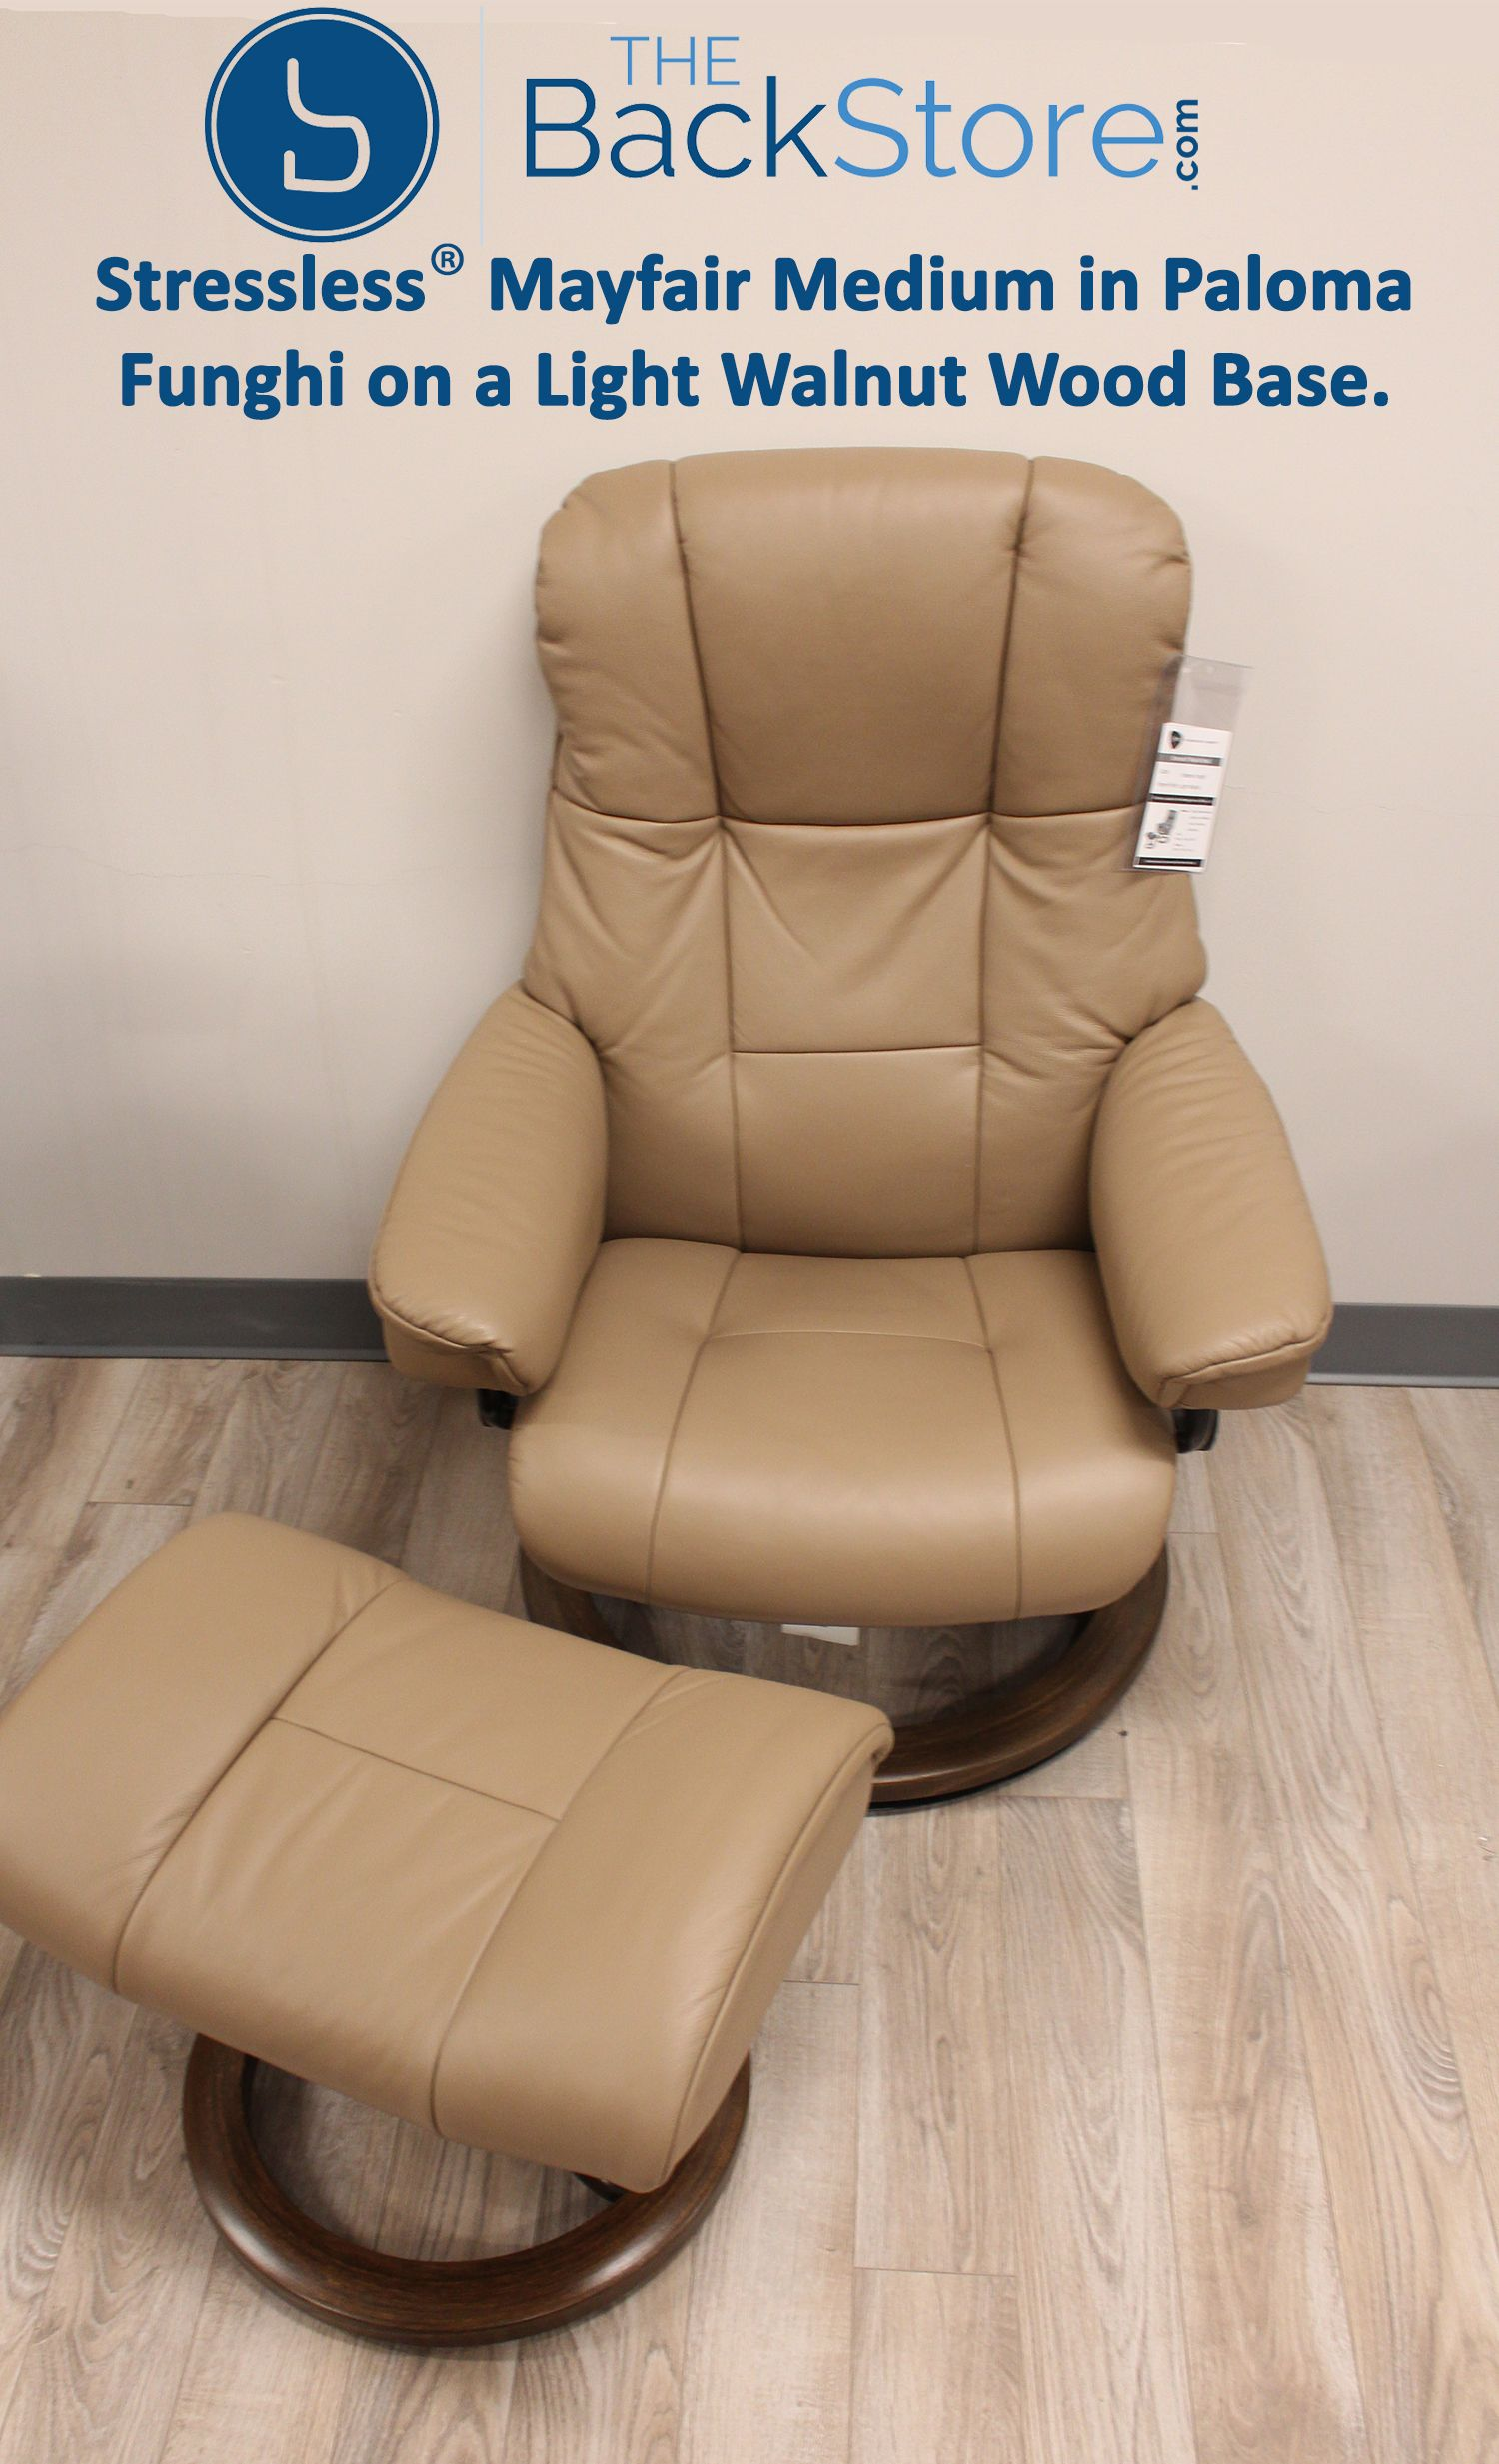 Stressless Nordic Legcomfort Pin By The Back Store On Stressless Sofas And Recliners Recliner